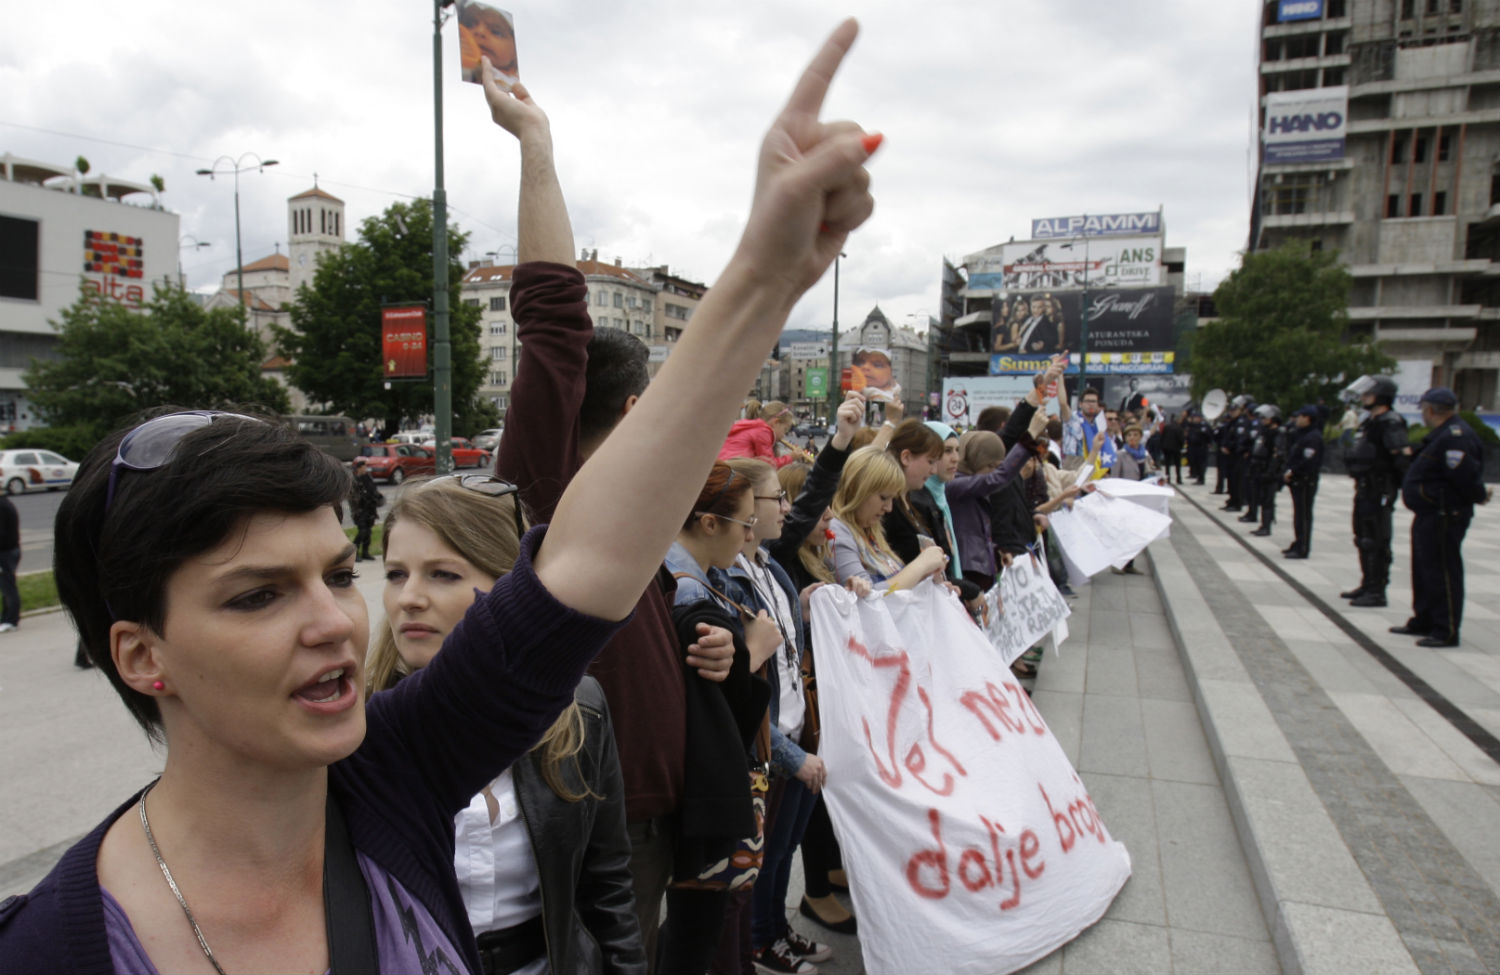 Protesters-form-a-human-chain-outside-their-parliament-building-in-Sarajevo.-APAmel-Emric